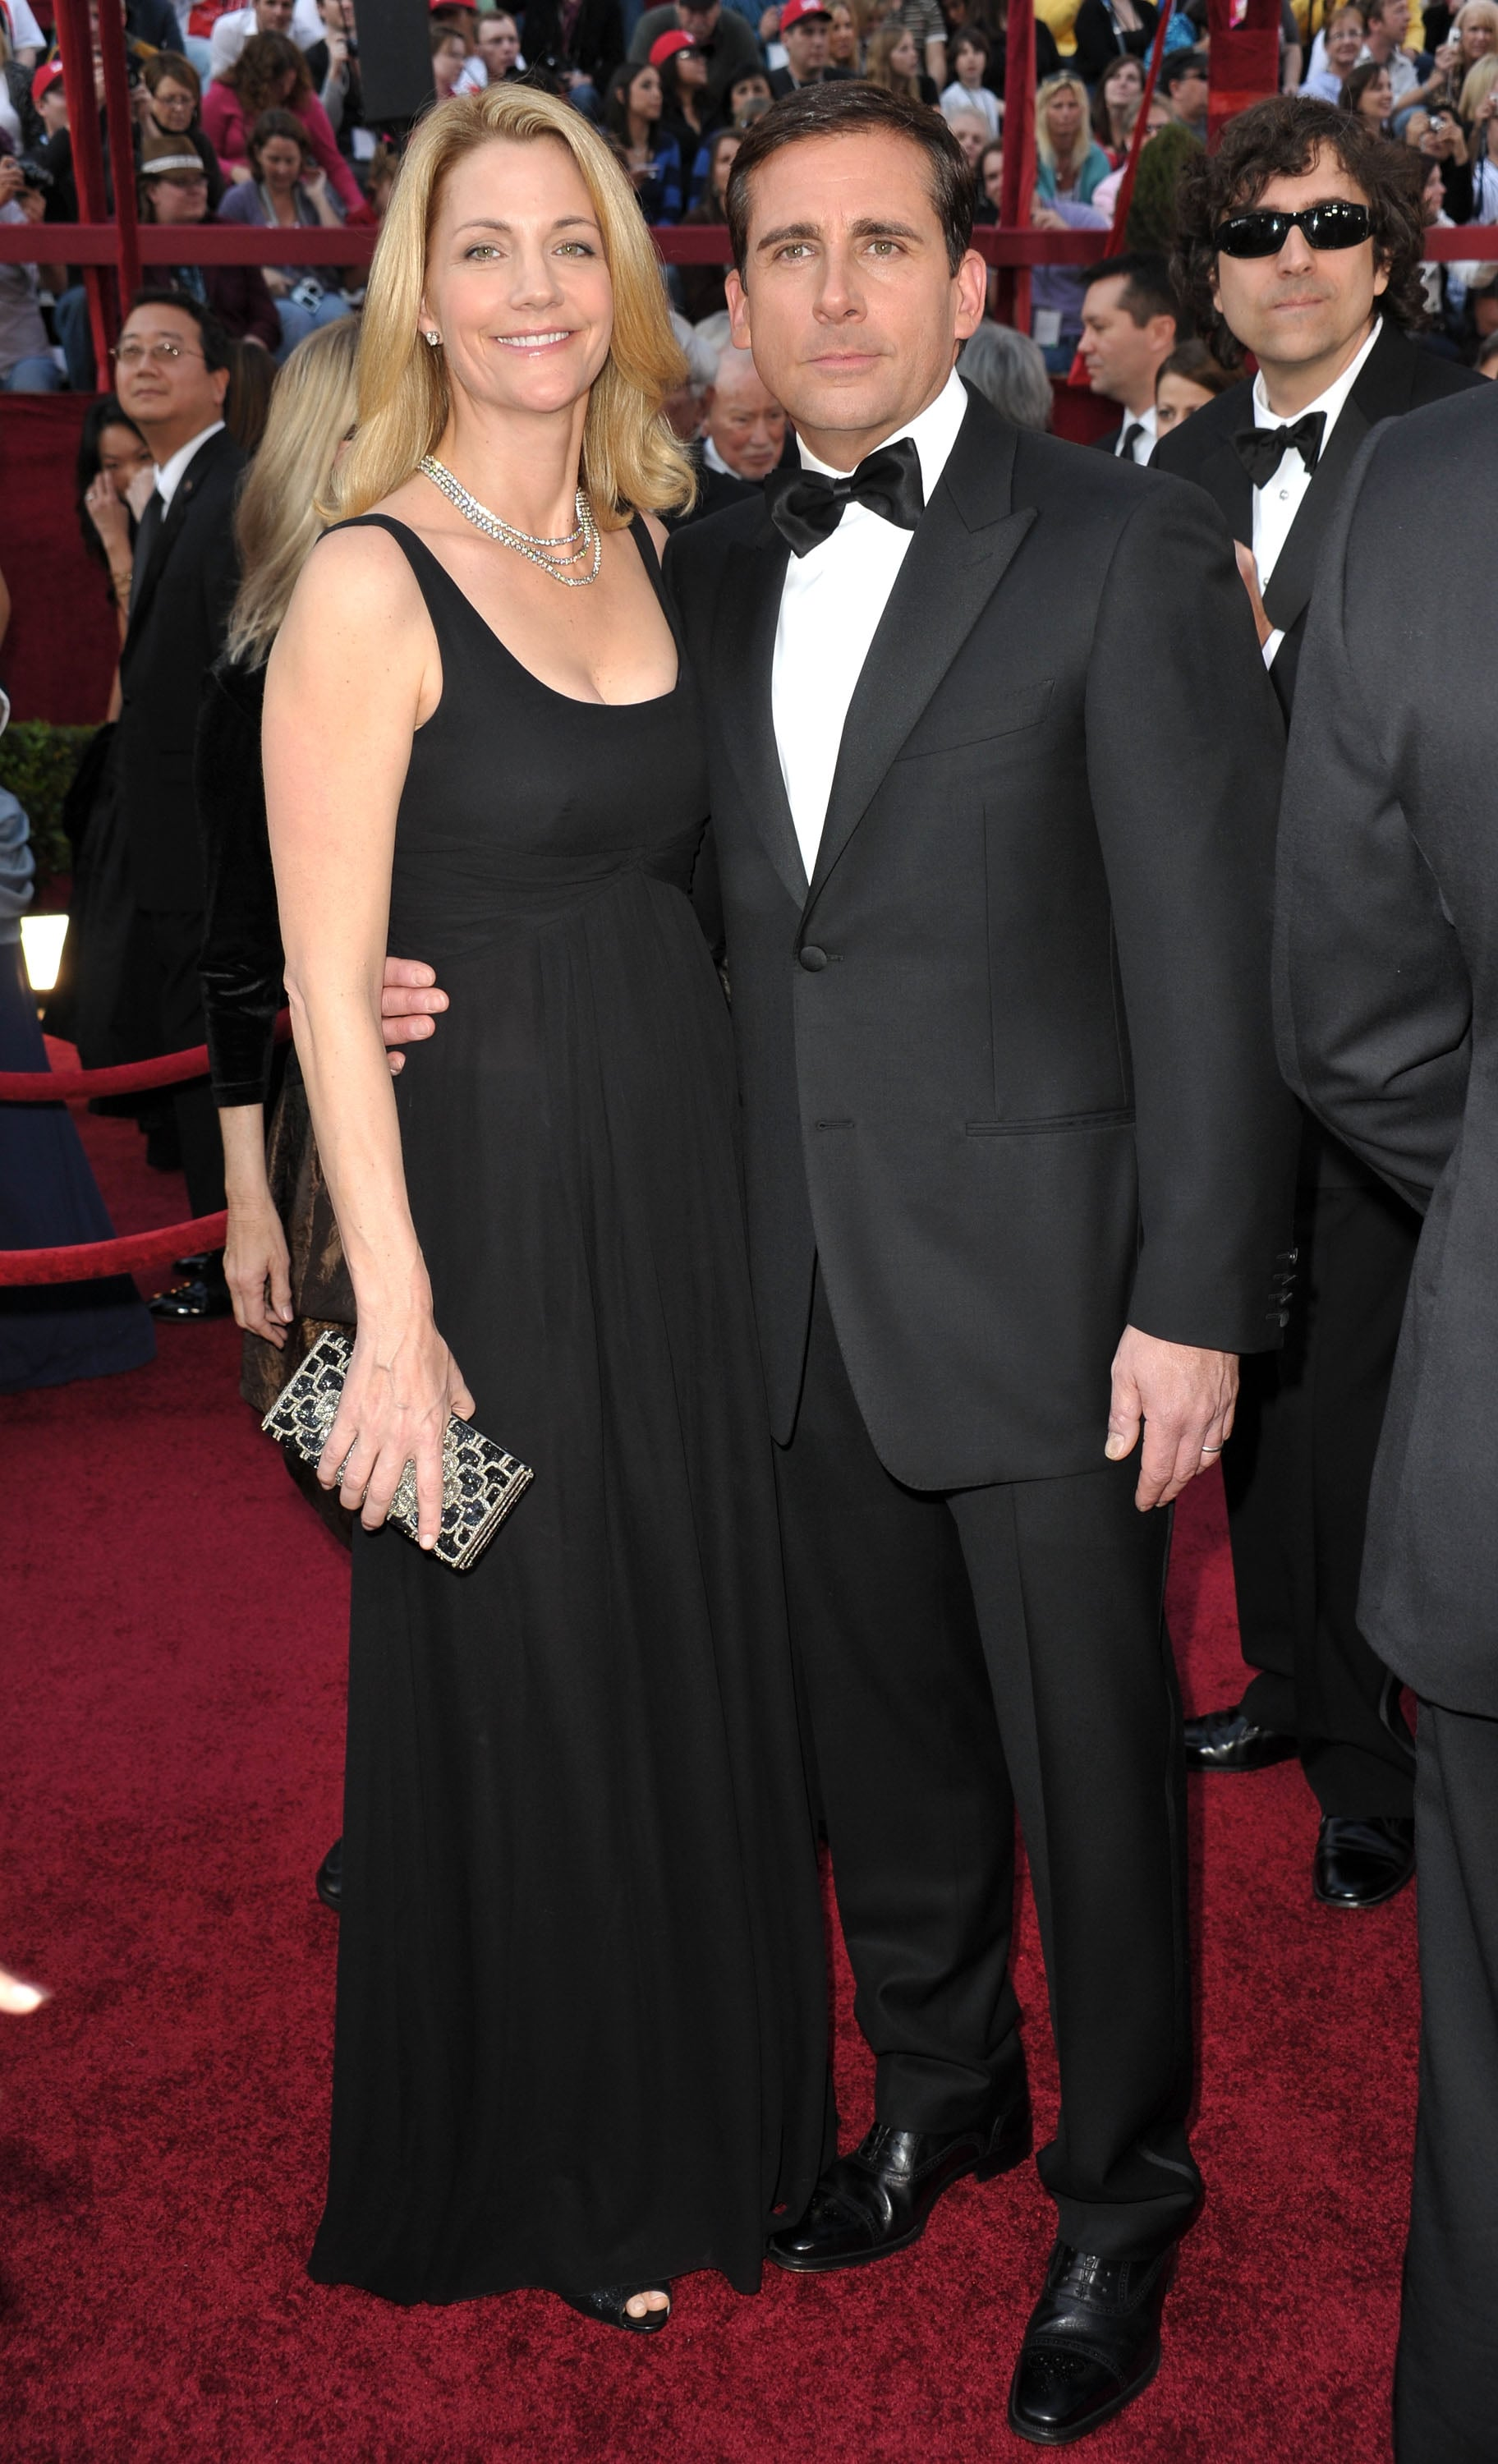 Extensive Gallery Of Photos Of Men From The 2010 Oscars